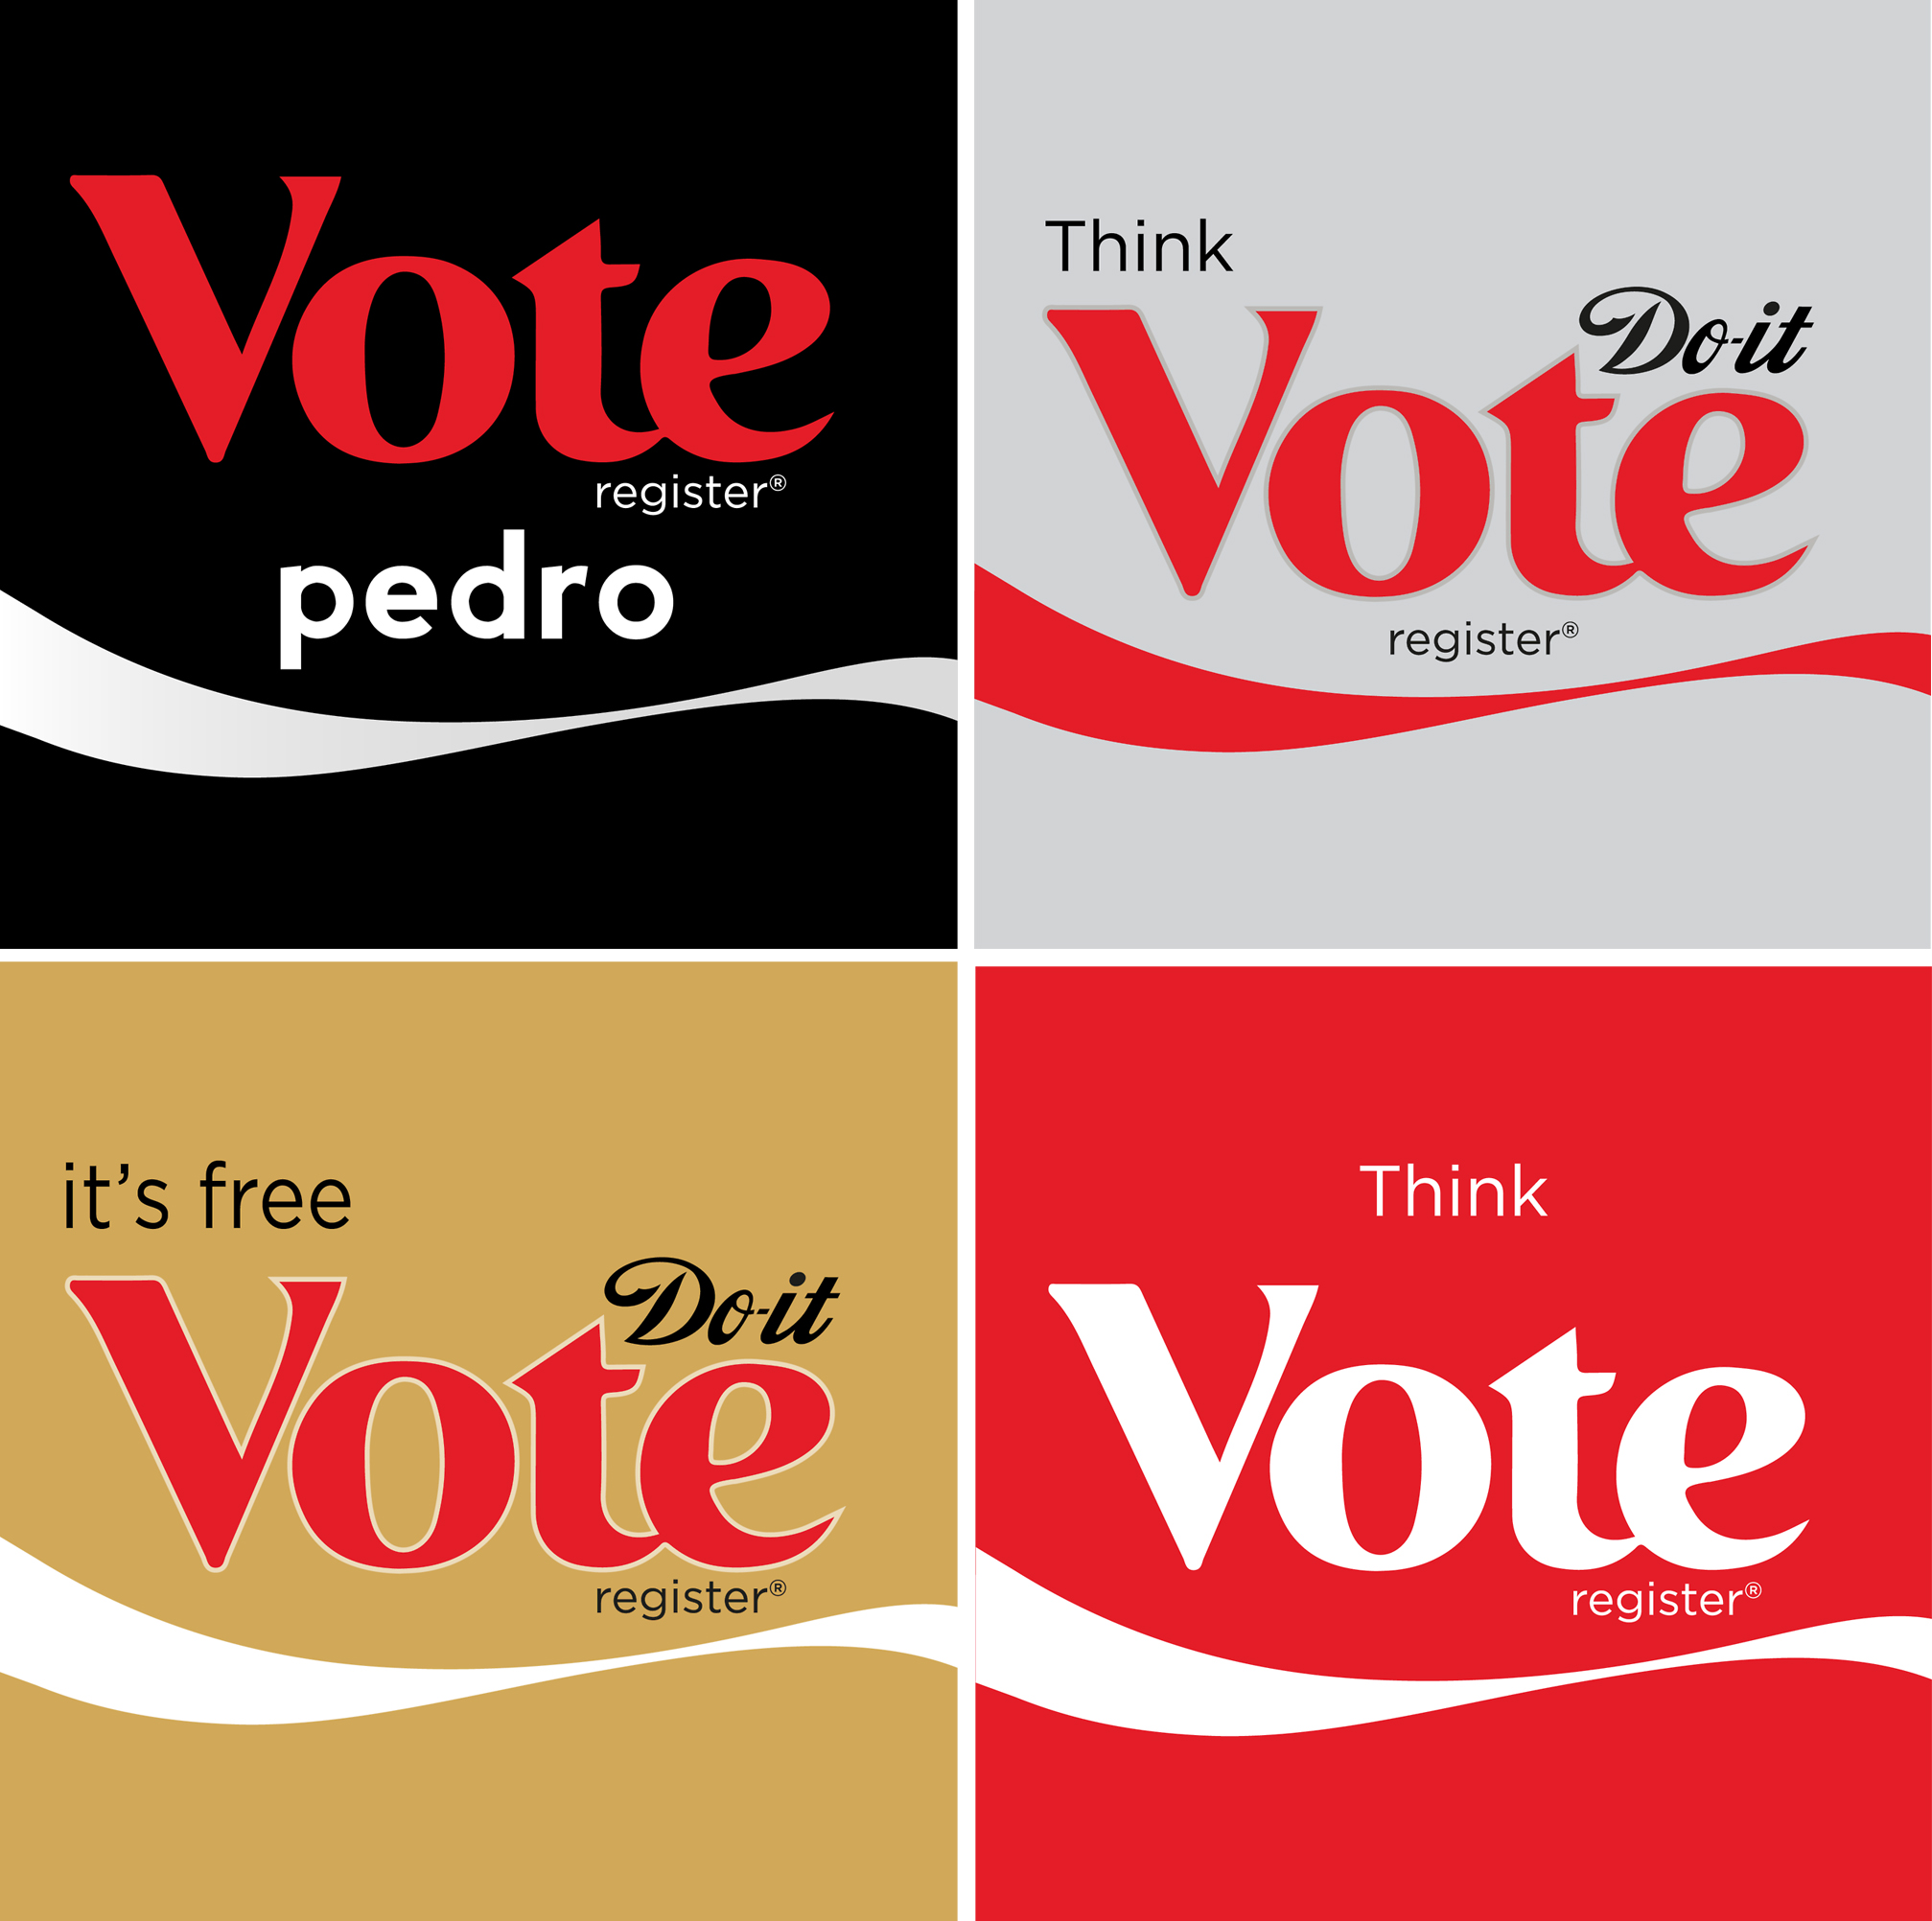 WE MADE THESE SOCIAL POSTS TO PROMOTE THE FACT WE NEED TO ALL VOTE - THINK VOTE | DO IT VOTE | REGISTER BUT IF ALL ELSE FAILS: VOTE FOR PEDRO!